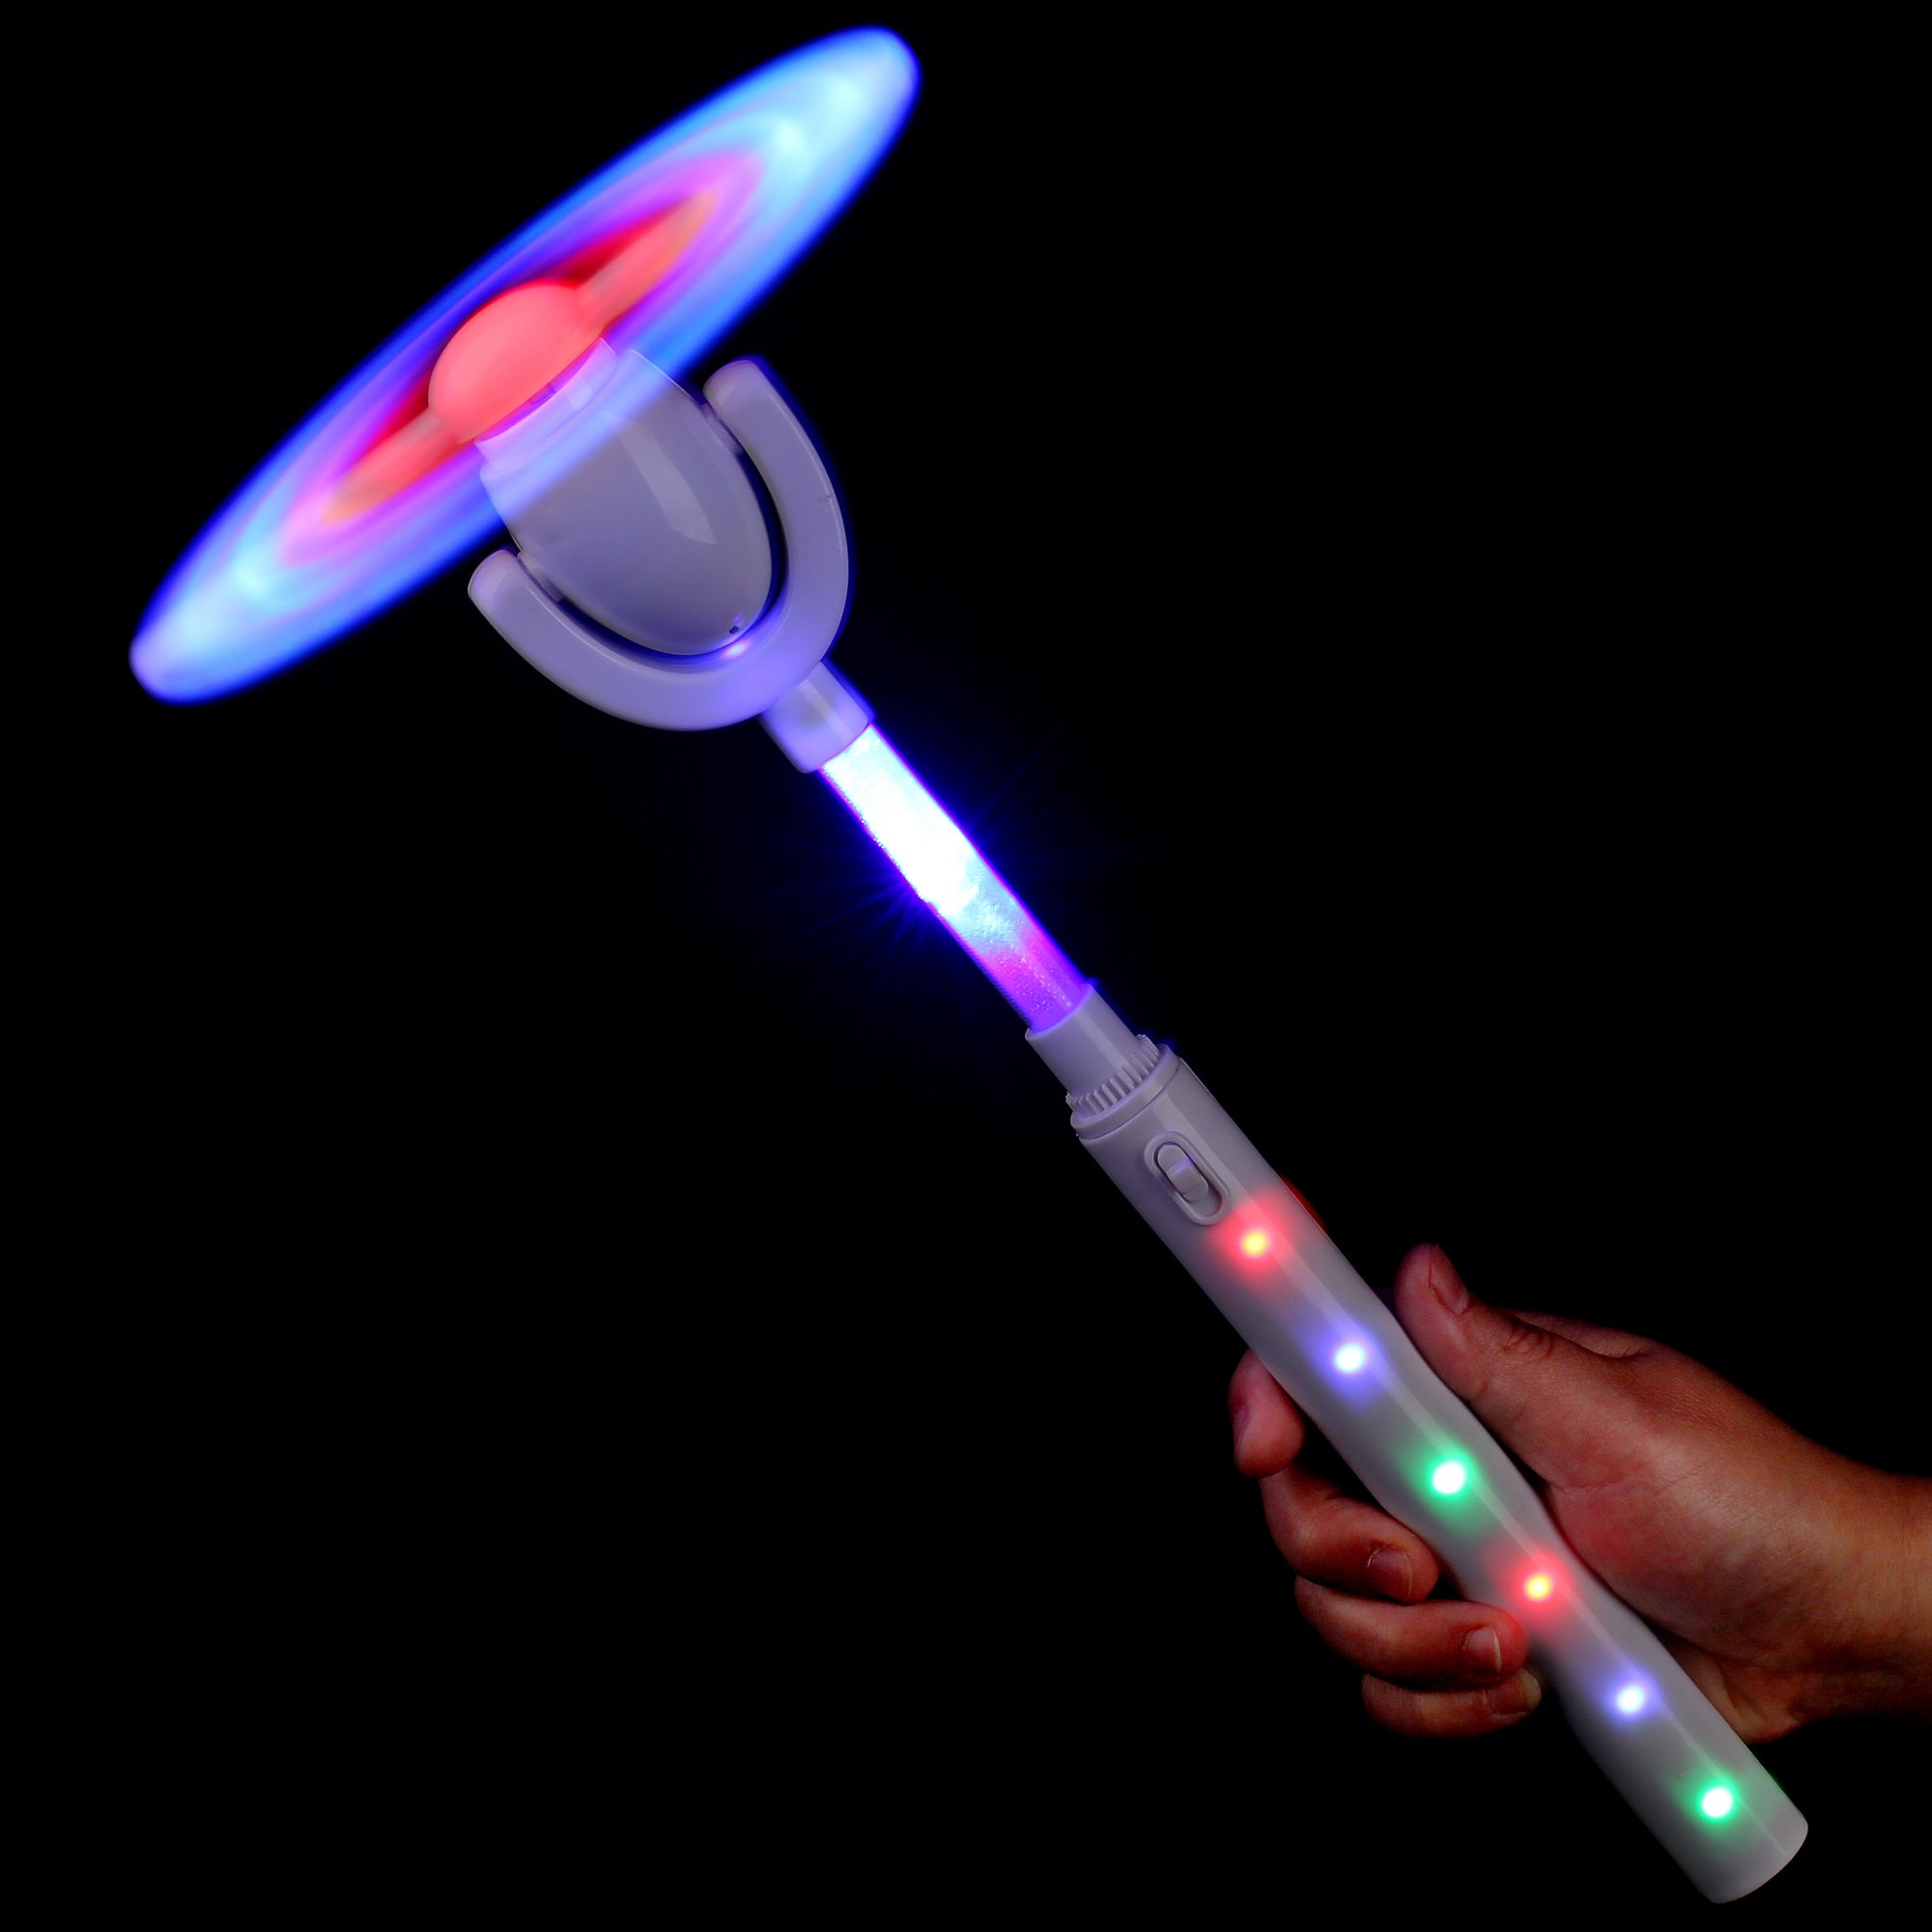 Light up princess wand sound led colors for Light up wand